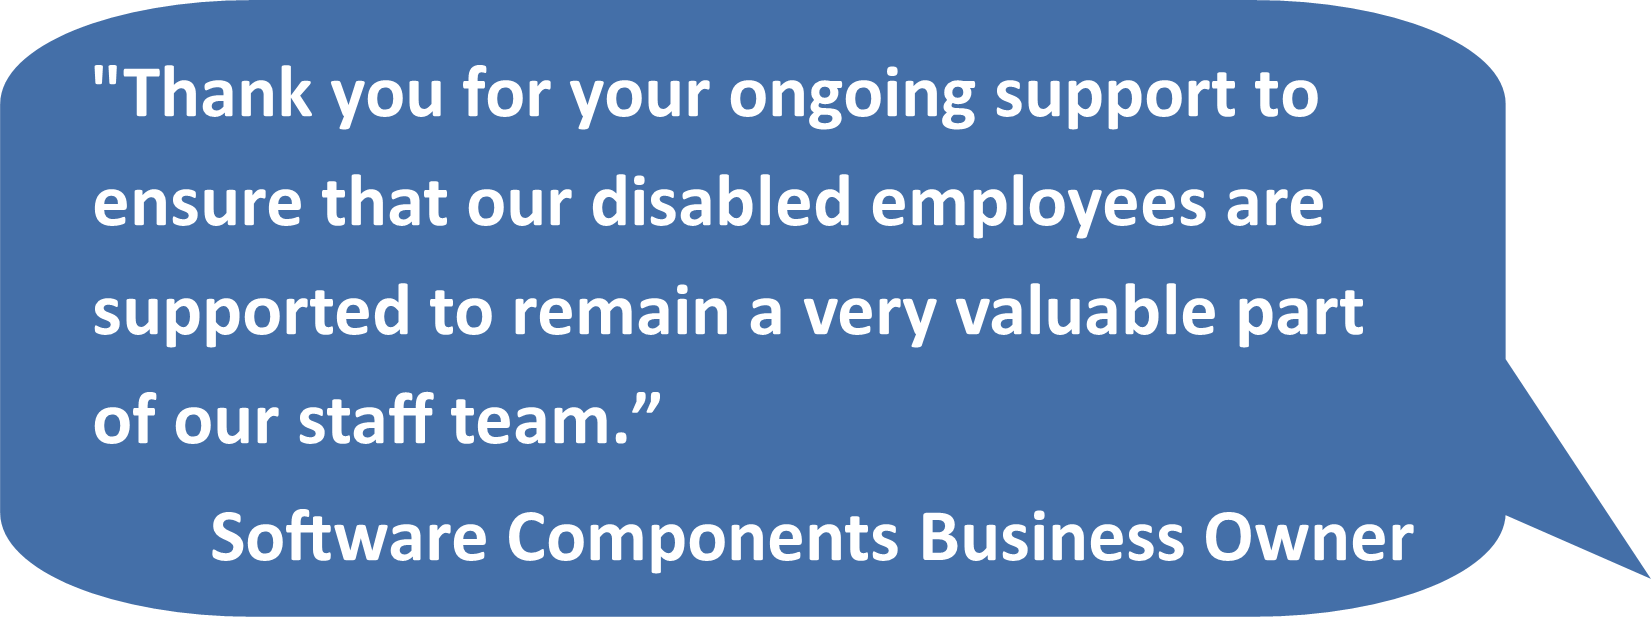 'Thank you for your ongoing support to ensure that our disabled employees are supported to remain a very valuable part of our staff team.' Software Components Business Owner